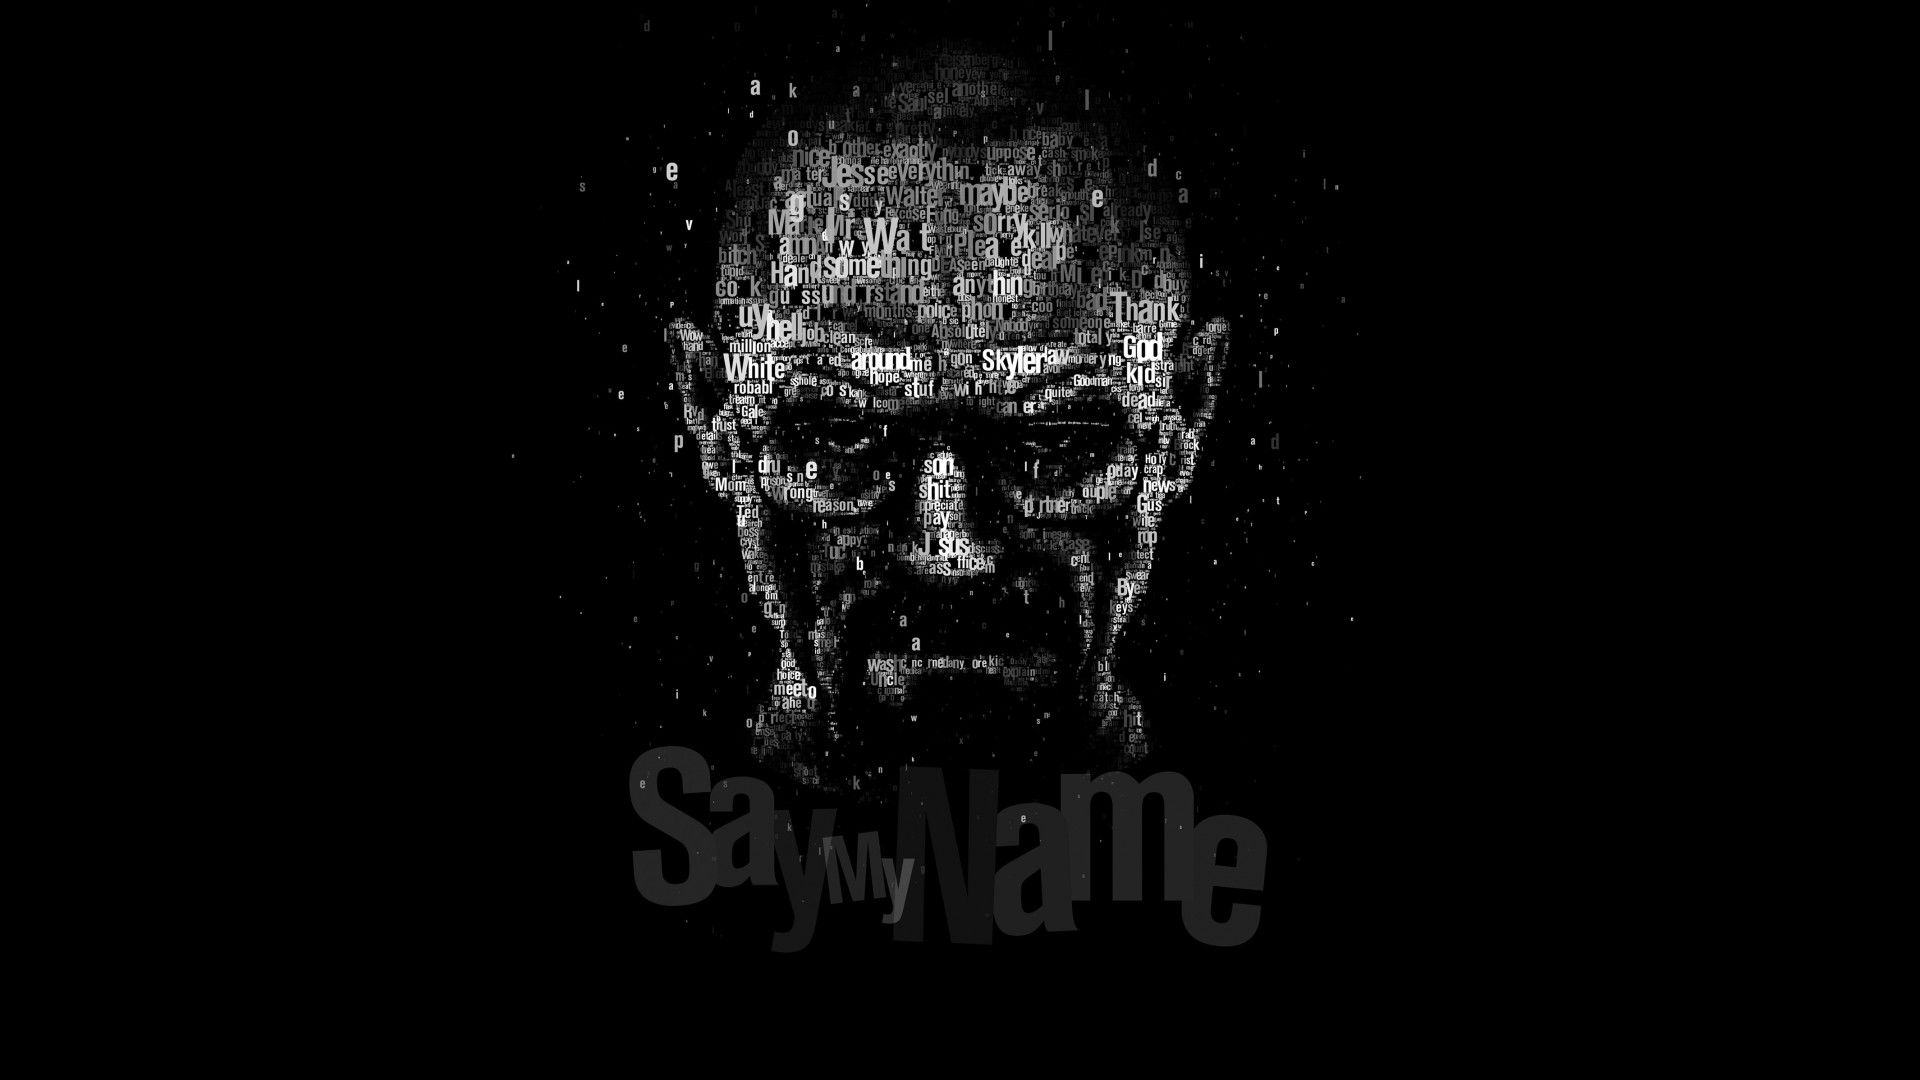 Say My Name - Typography Art Wallpaper for Desktop 1920x1080